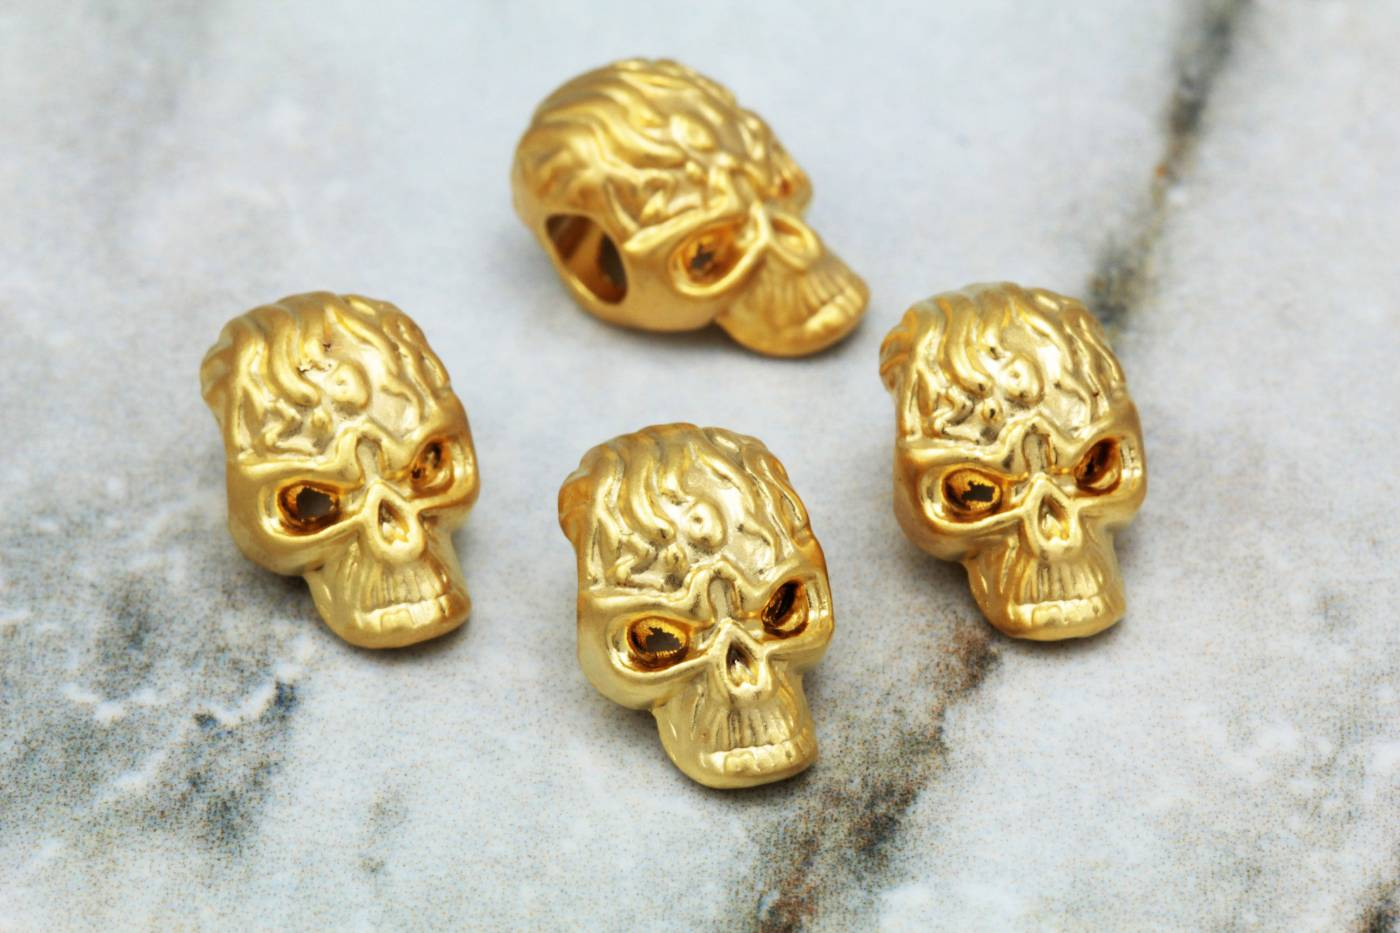 gold-plate-metal-skull-jewelry-charms.jpg